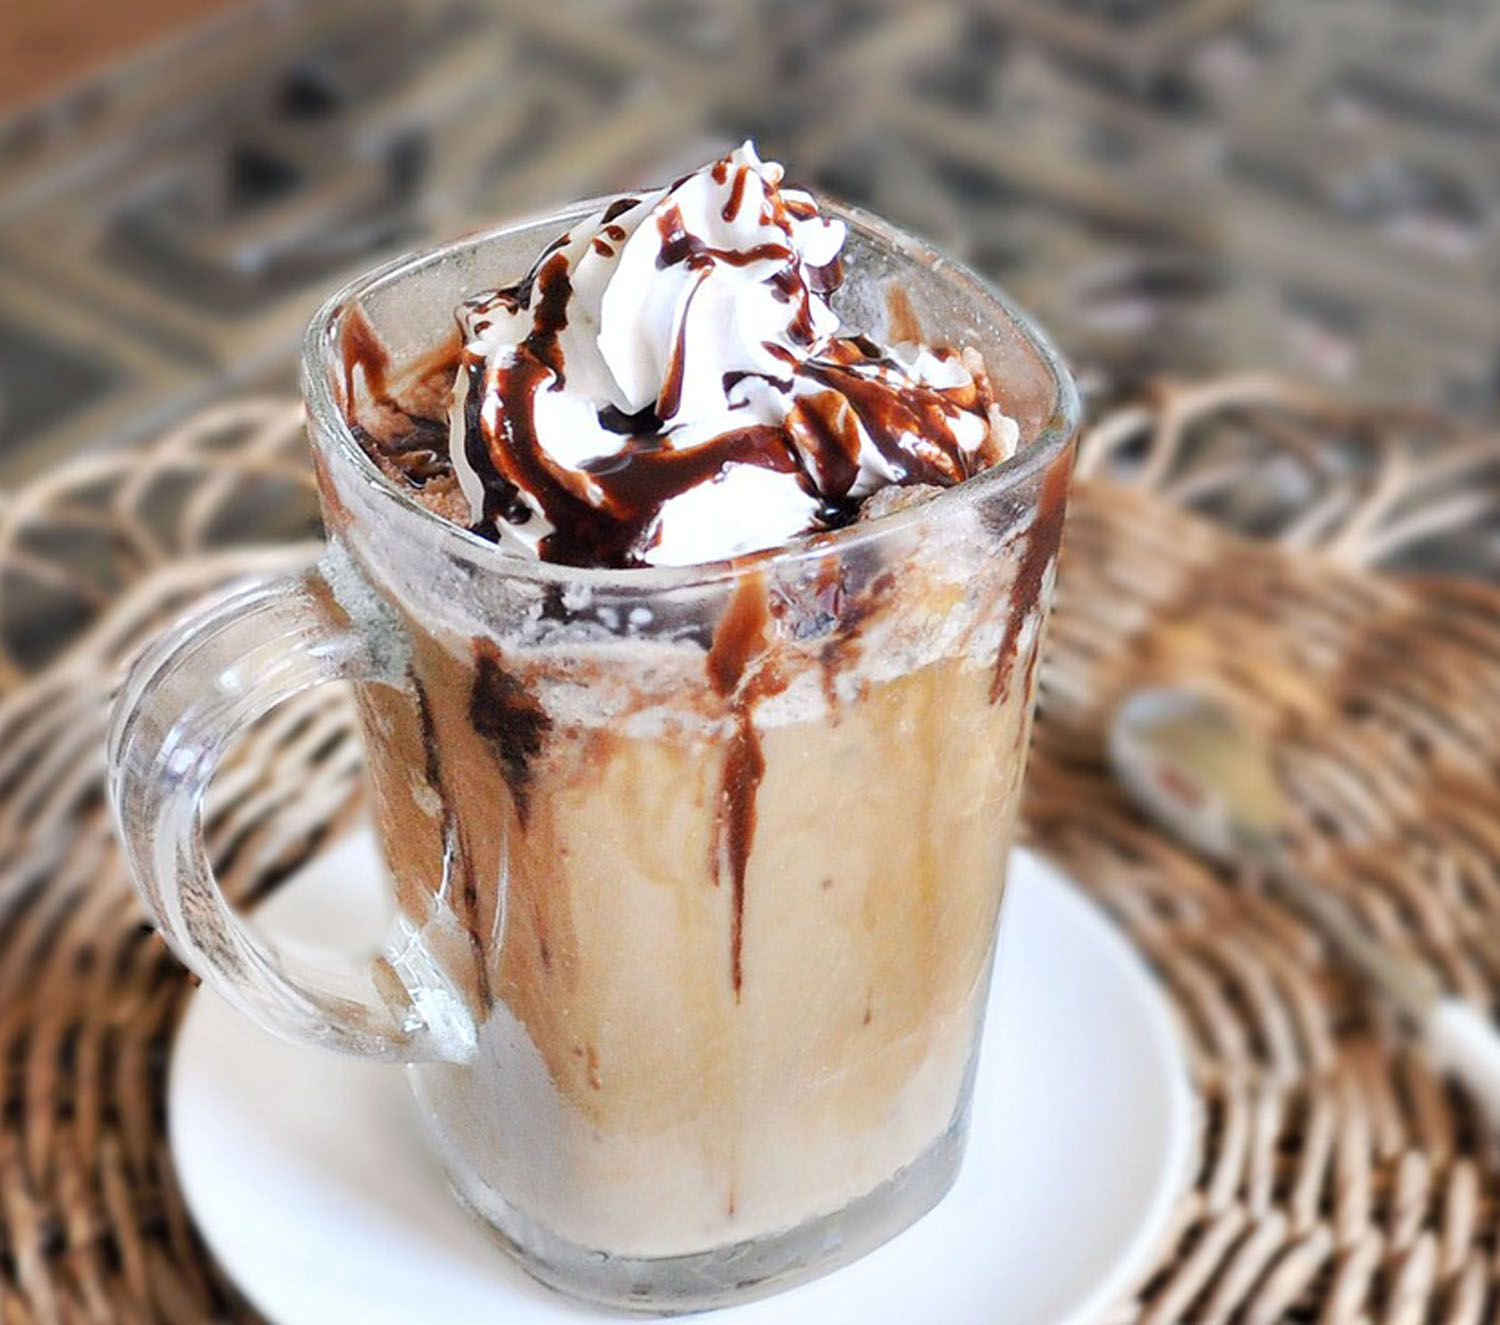 This Frappuccino recipe tastes JUST like Starbucks... and it's much healthier and cheaper! >> Must try!